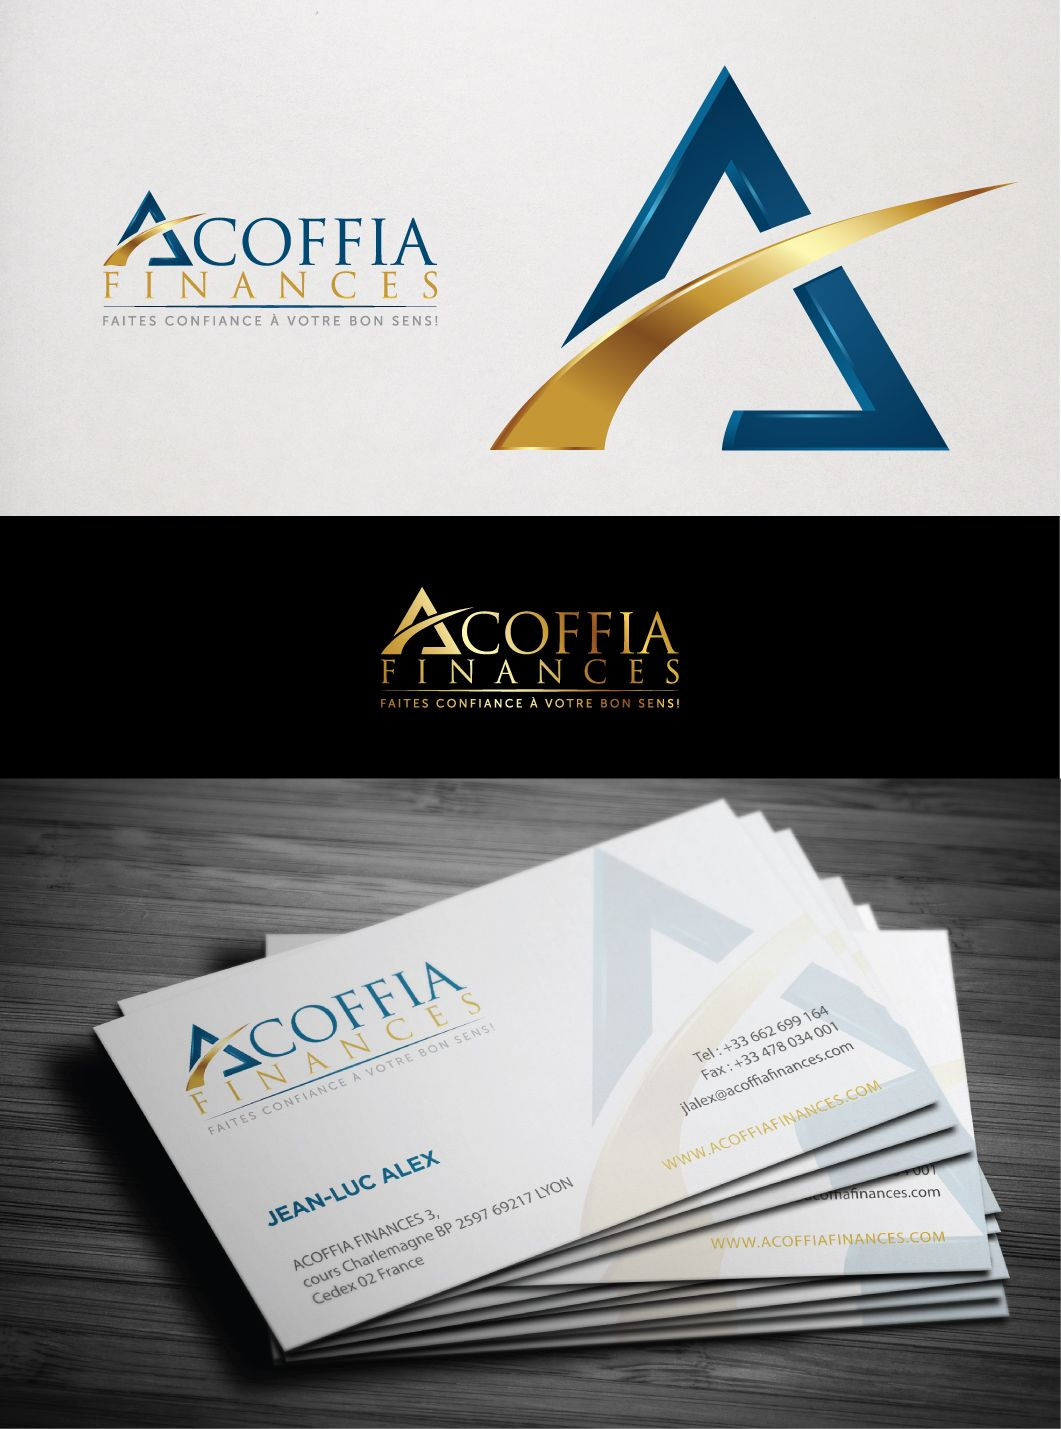 A logo and business card design for company acoffia finance in a logo and business card design for company acoffia finance in france colourmoves Image collections